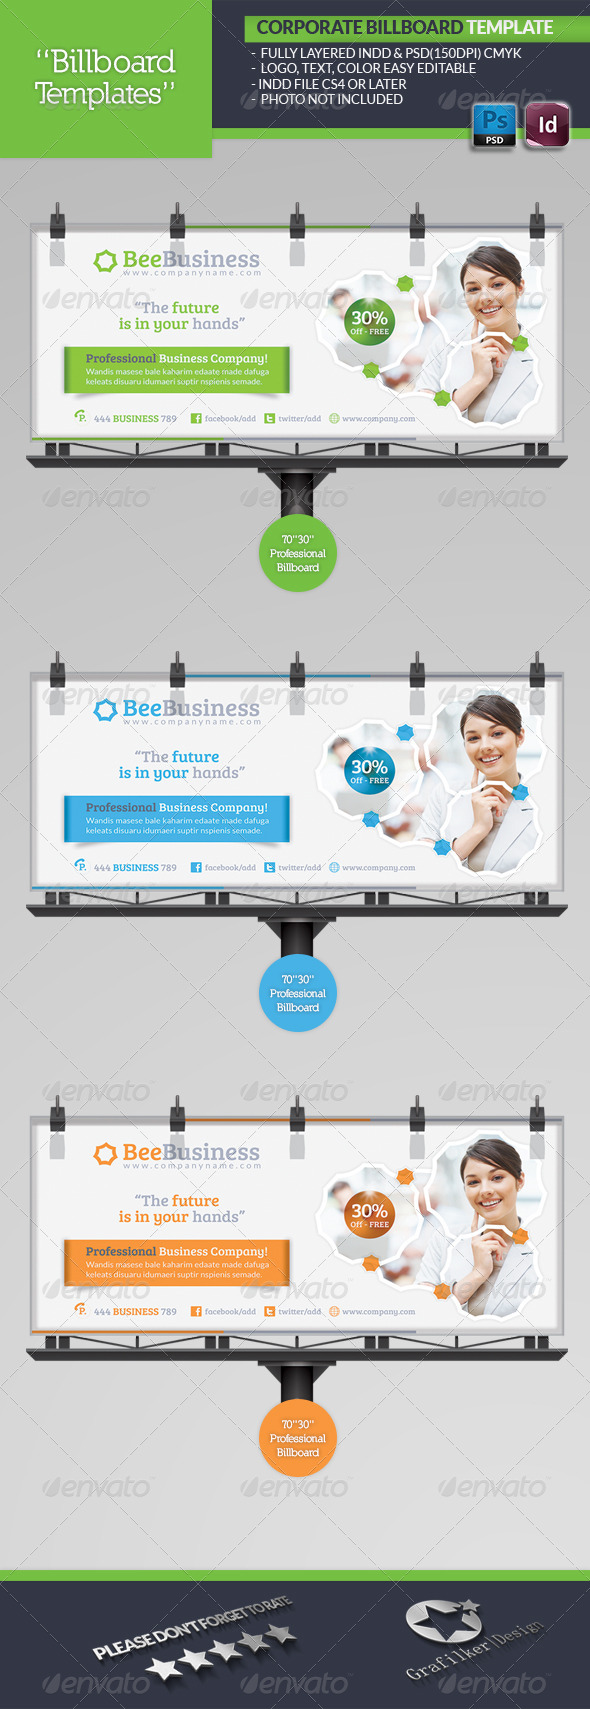 GraphicRiver Corporate Billboard Template 5115991